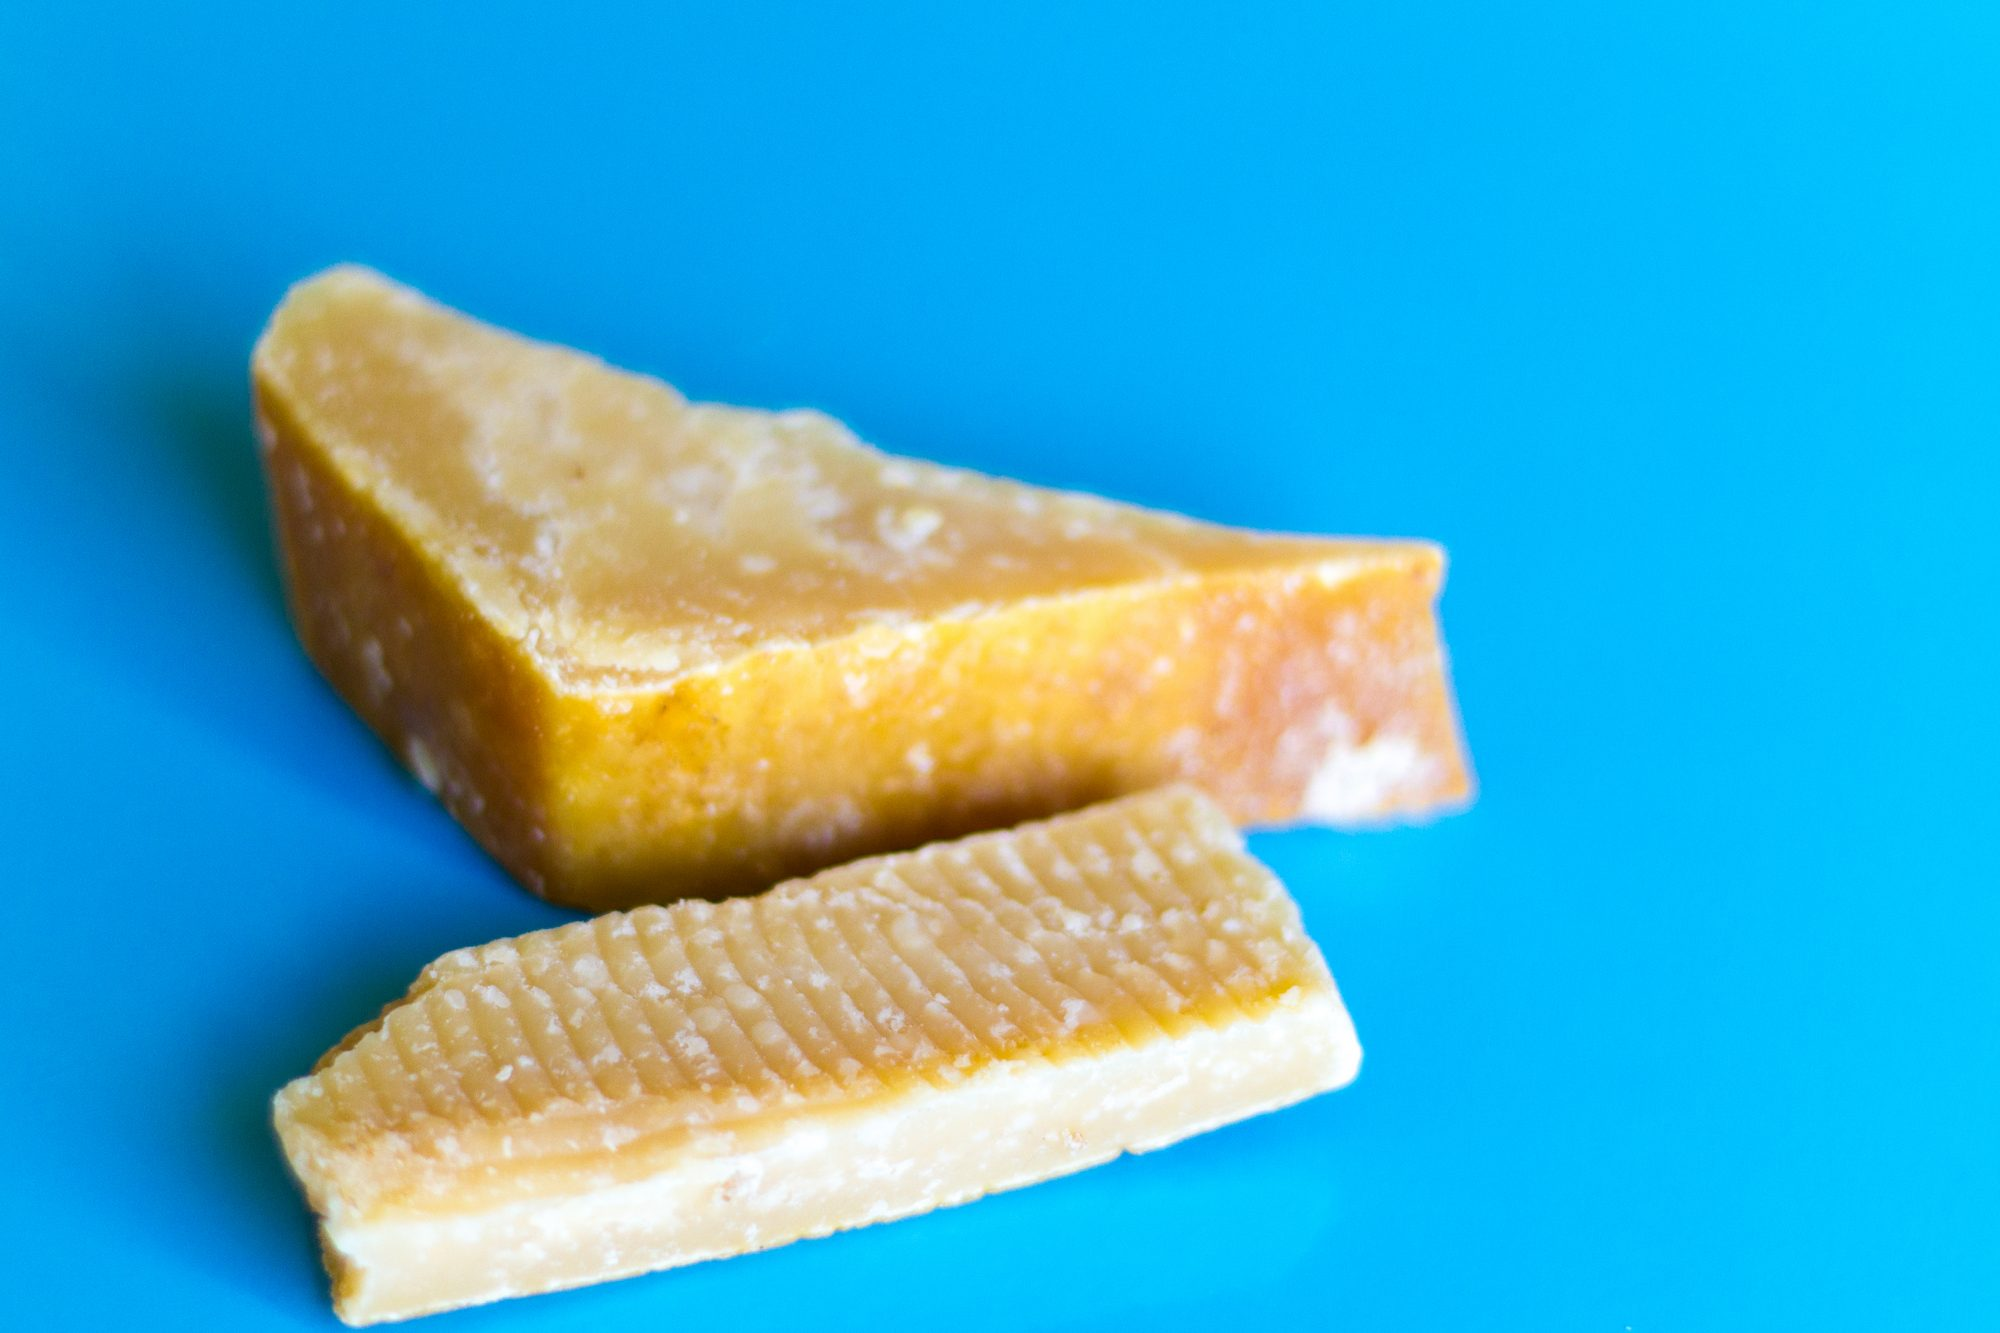 Parmesan Rinds with a Blue Background